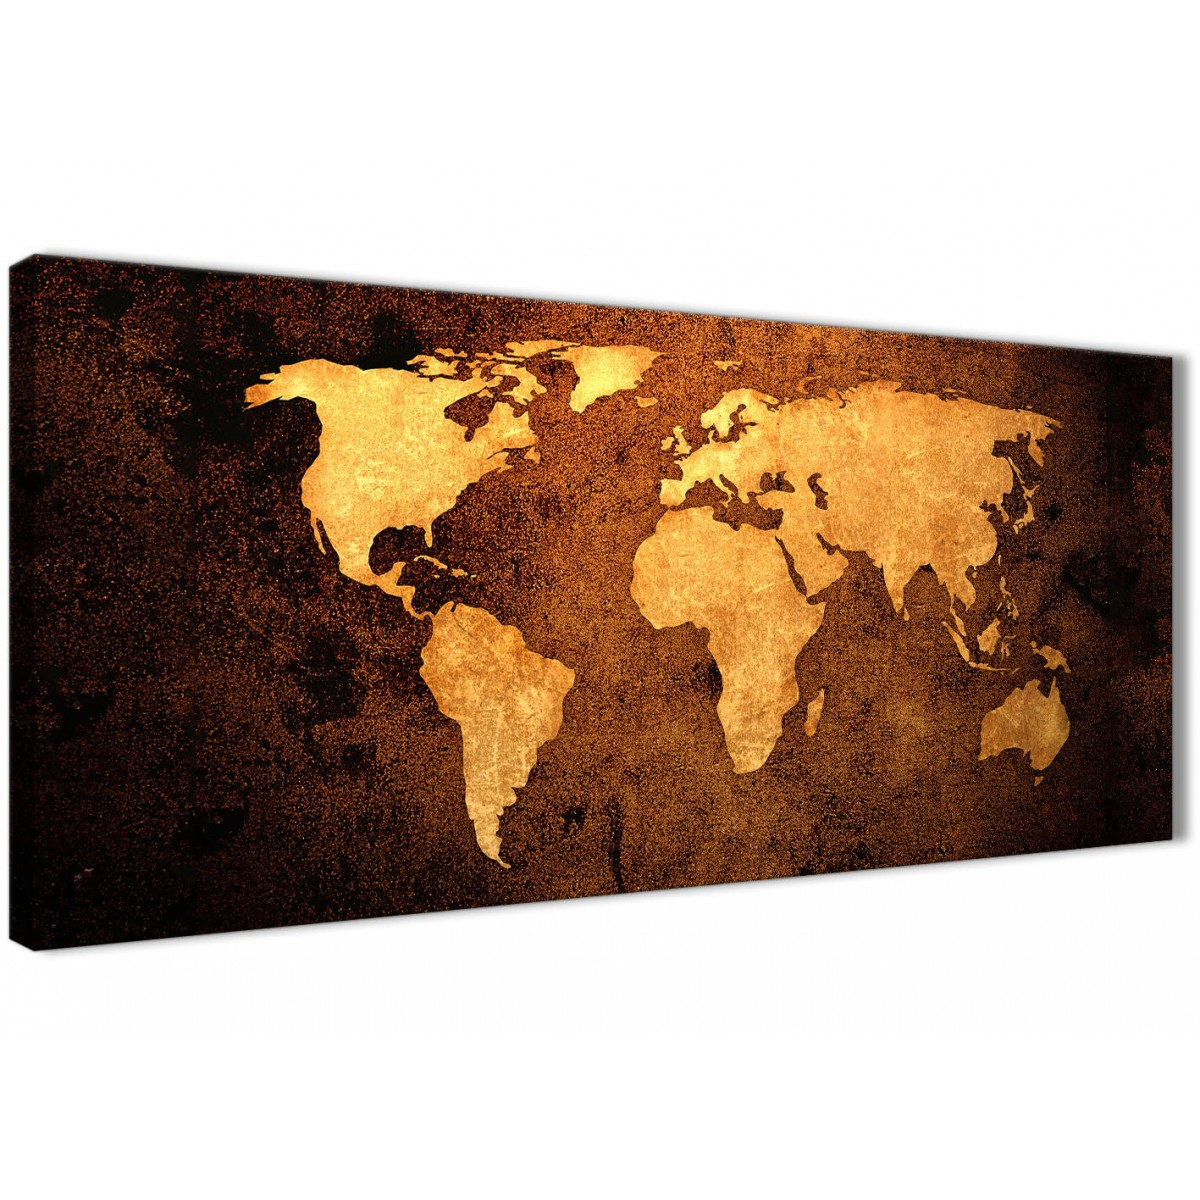 Vintage Old World Map Brown Cream Canvas Living Room